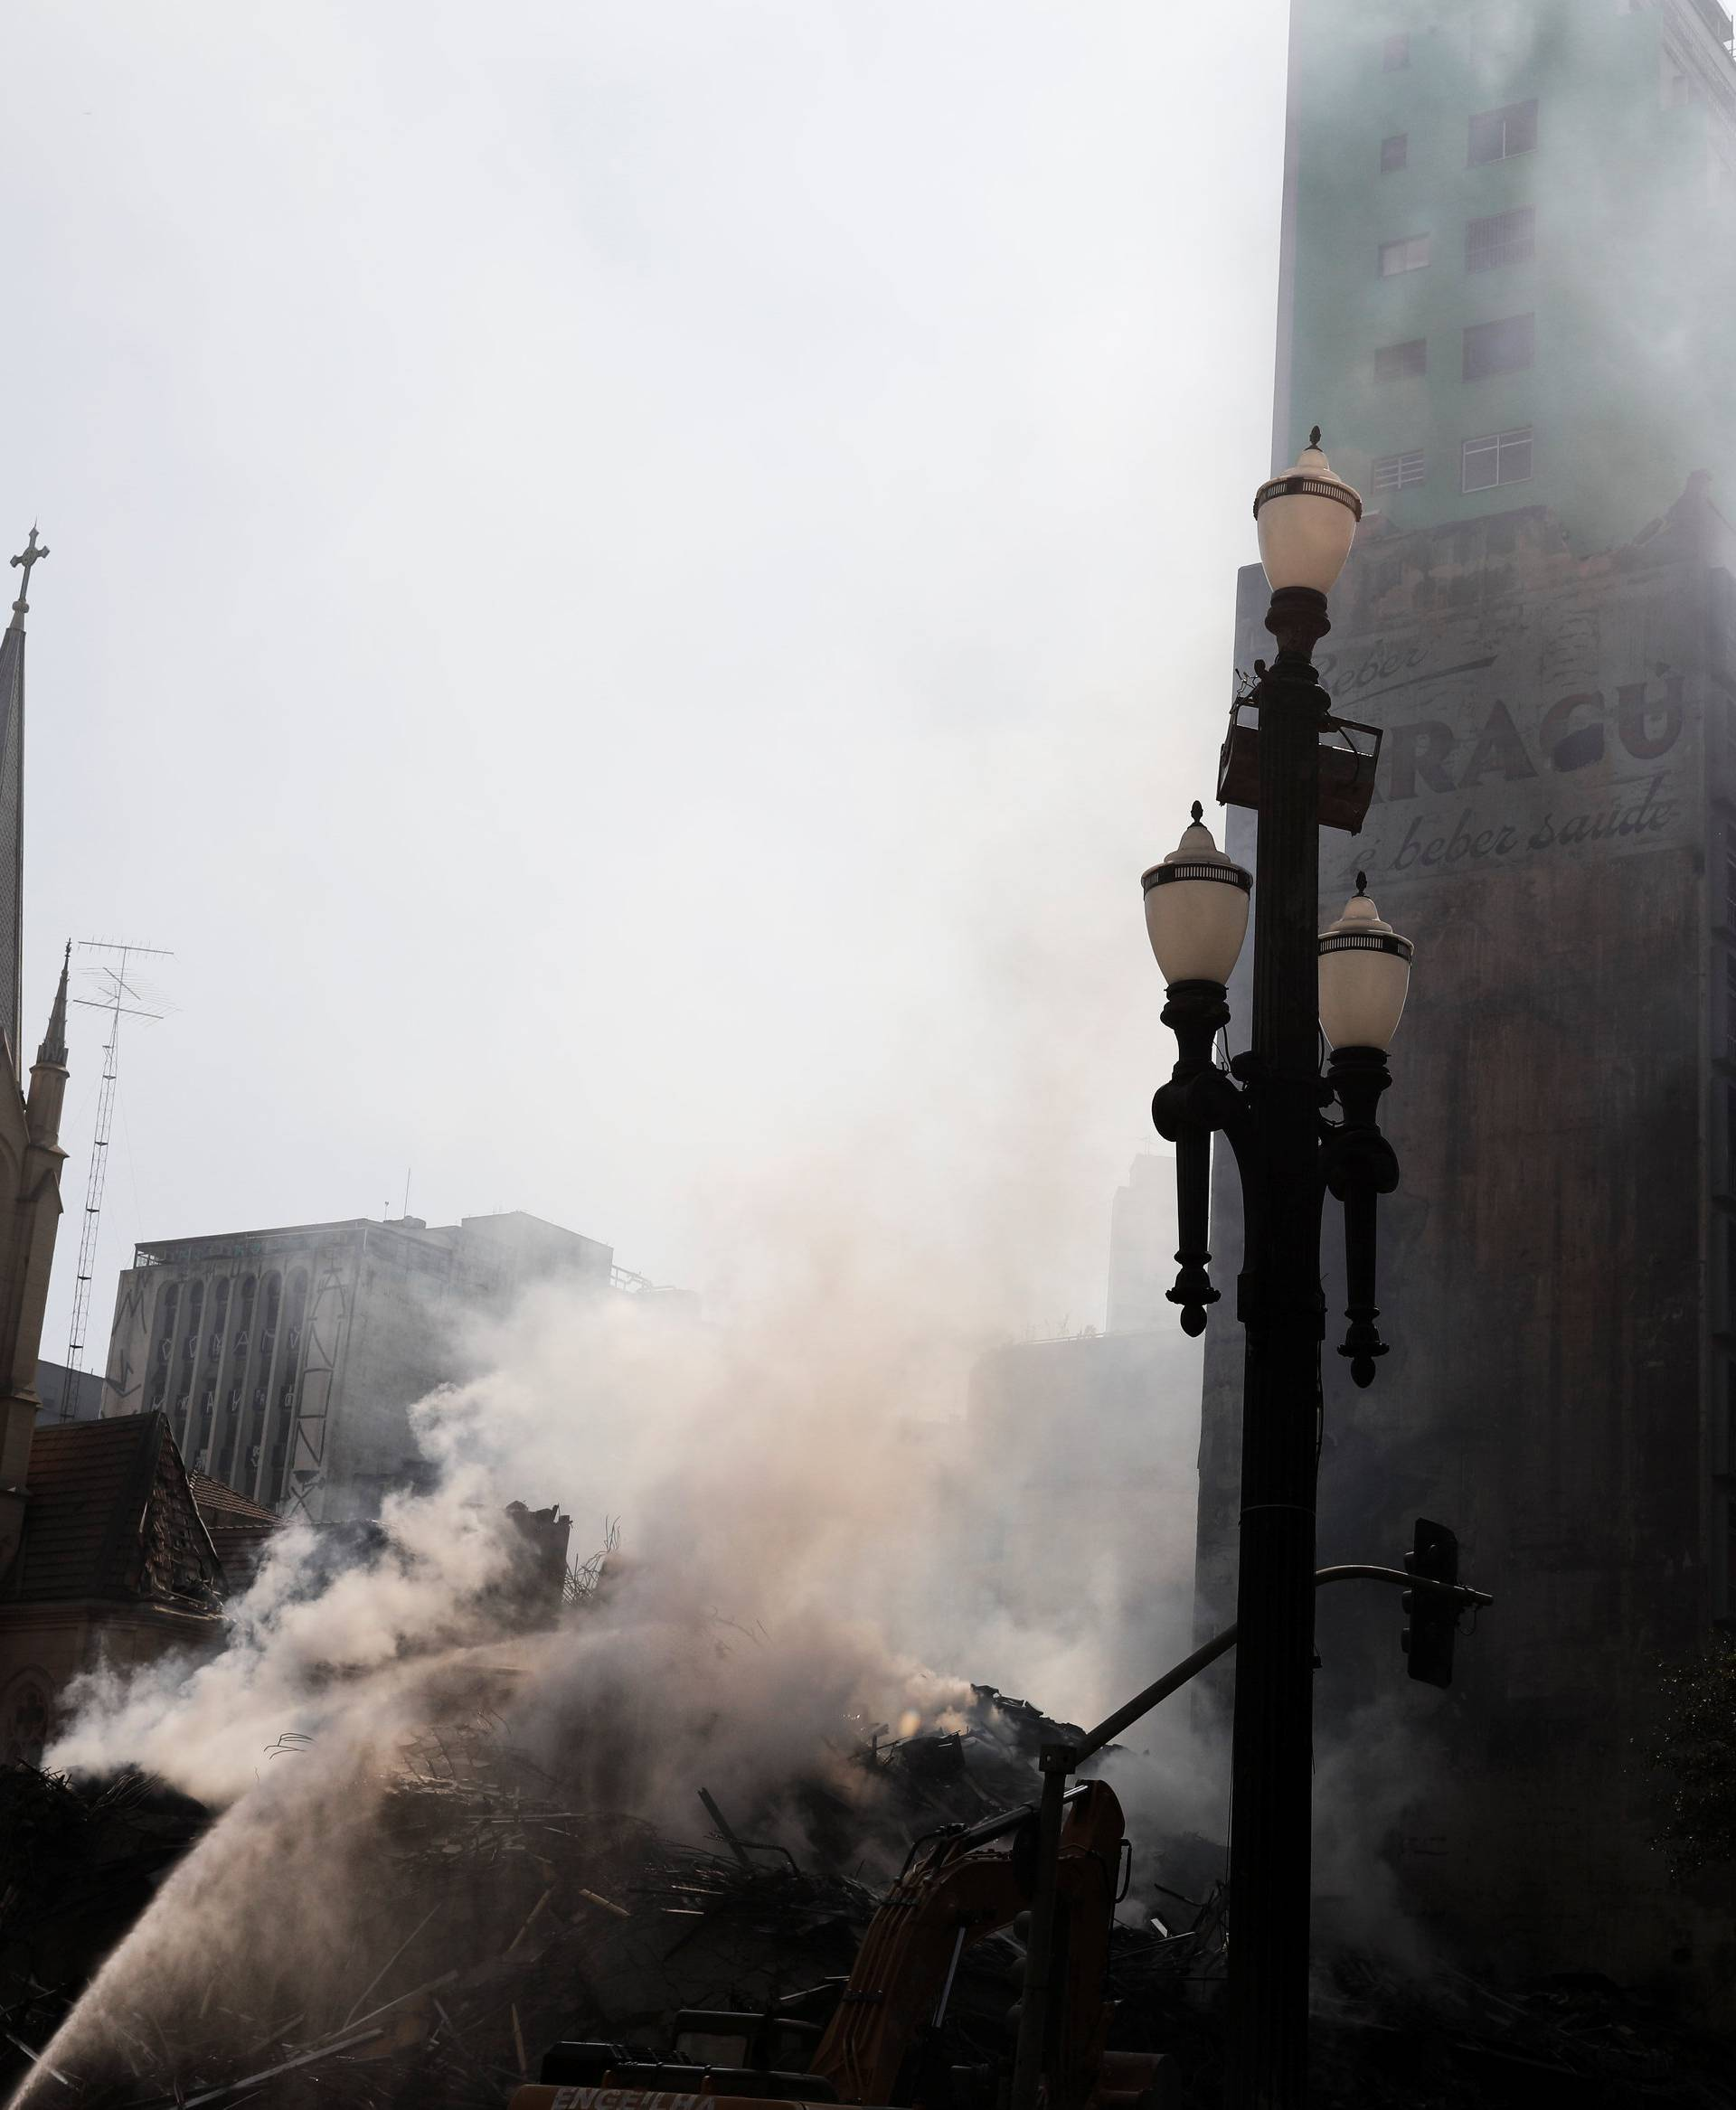 Firefighters try to extinguish the fire of a building that caught fire and collapsed in the center of Sao Paulo